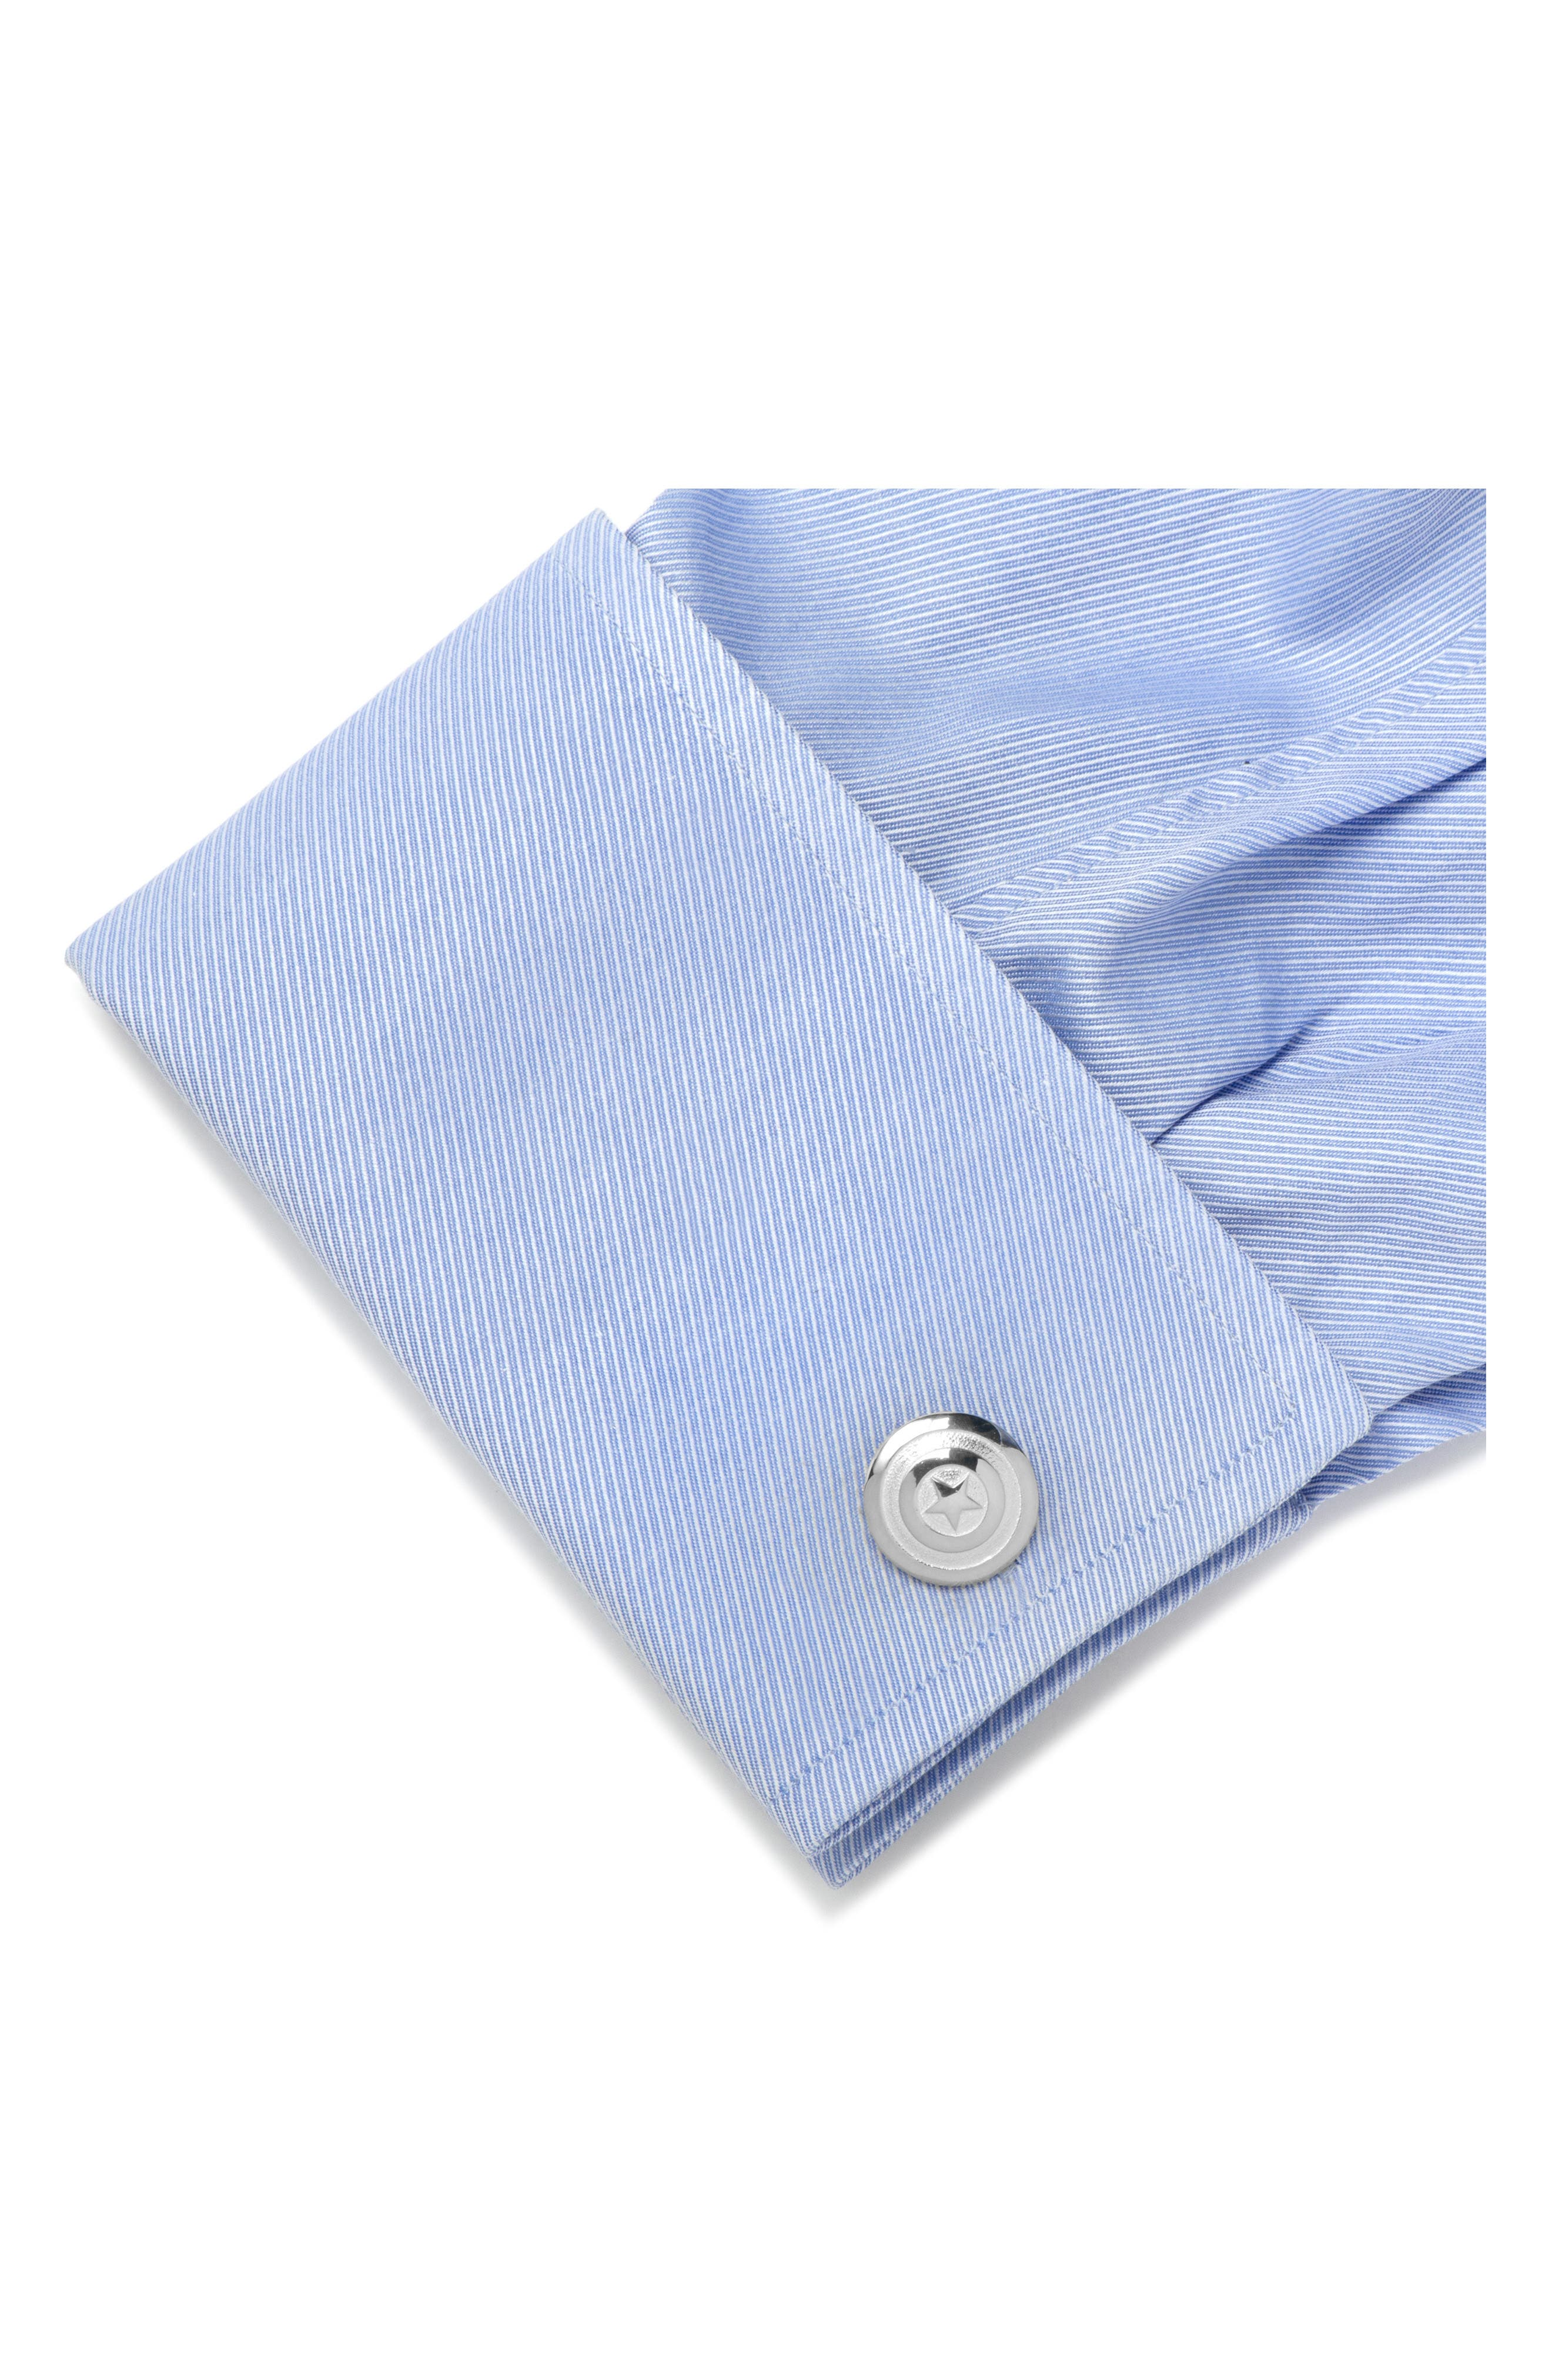 Captain America Cuff Links,                             Alternate thumbnail 2, color,                             SILVER